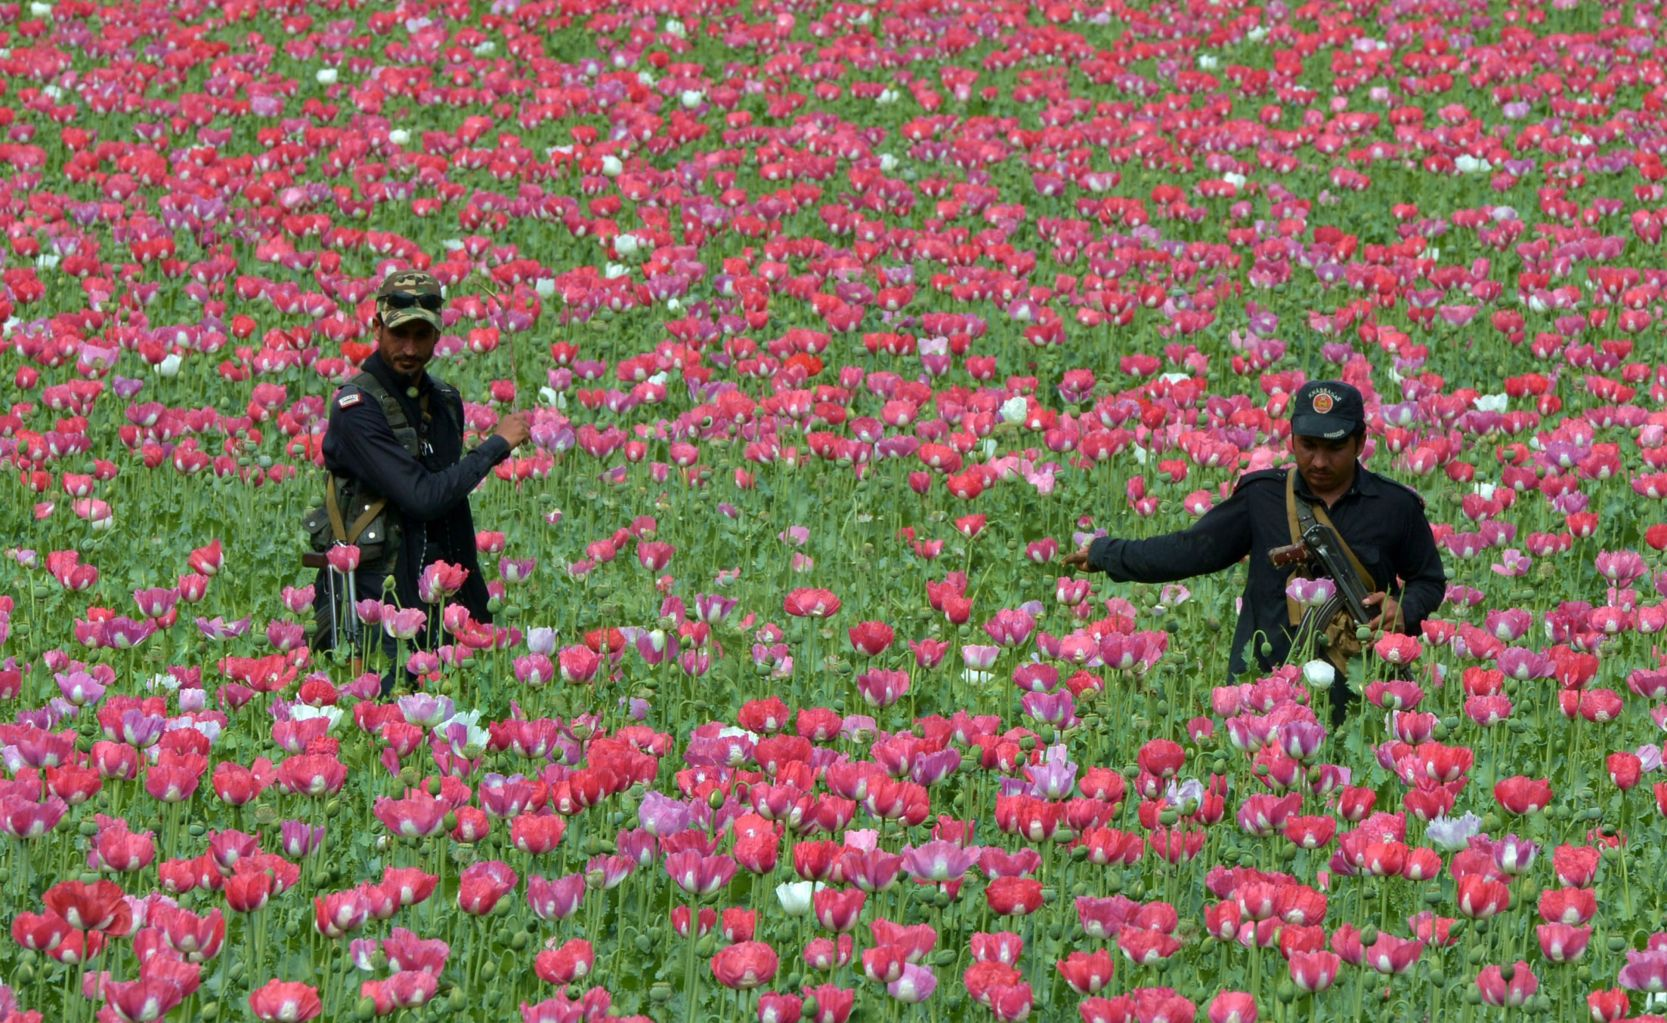 TOPSHOT - Pakistani Khasadaar Force personnel destroy poppy crops in the Prang Ghar area of tribal Mohmand Agency, about 100 kilometers from Peshawar, on April 5, 2018.  The political administration of Mohmand Agency has destroyed poppy crops on more than 100 acres of land. / AFP PHOTO / ABDUL MAJEED        (Photo credit should read ABDUL MAJEED/AFP/Getty Images)